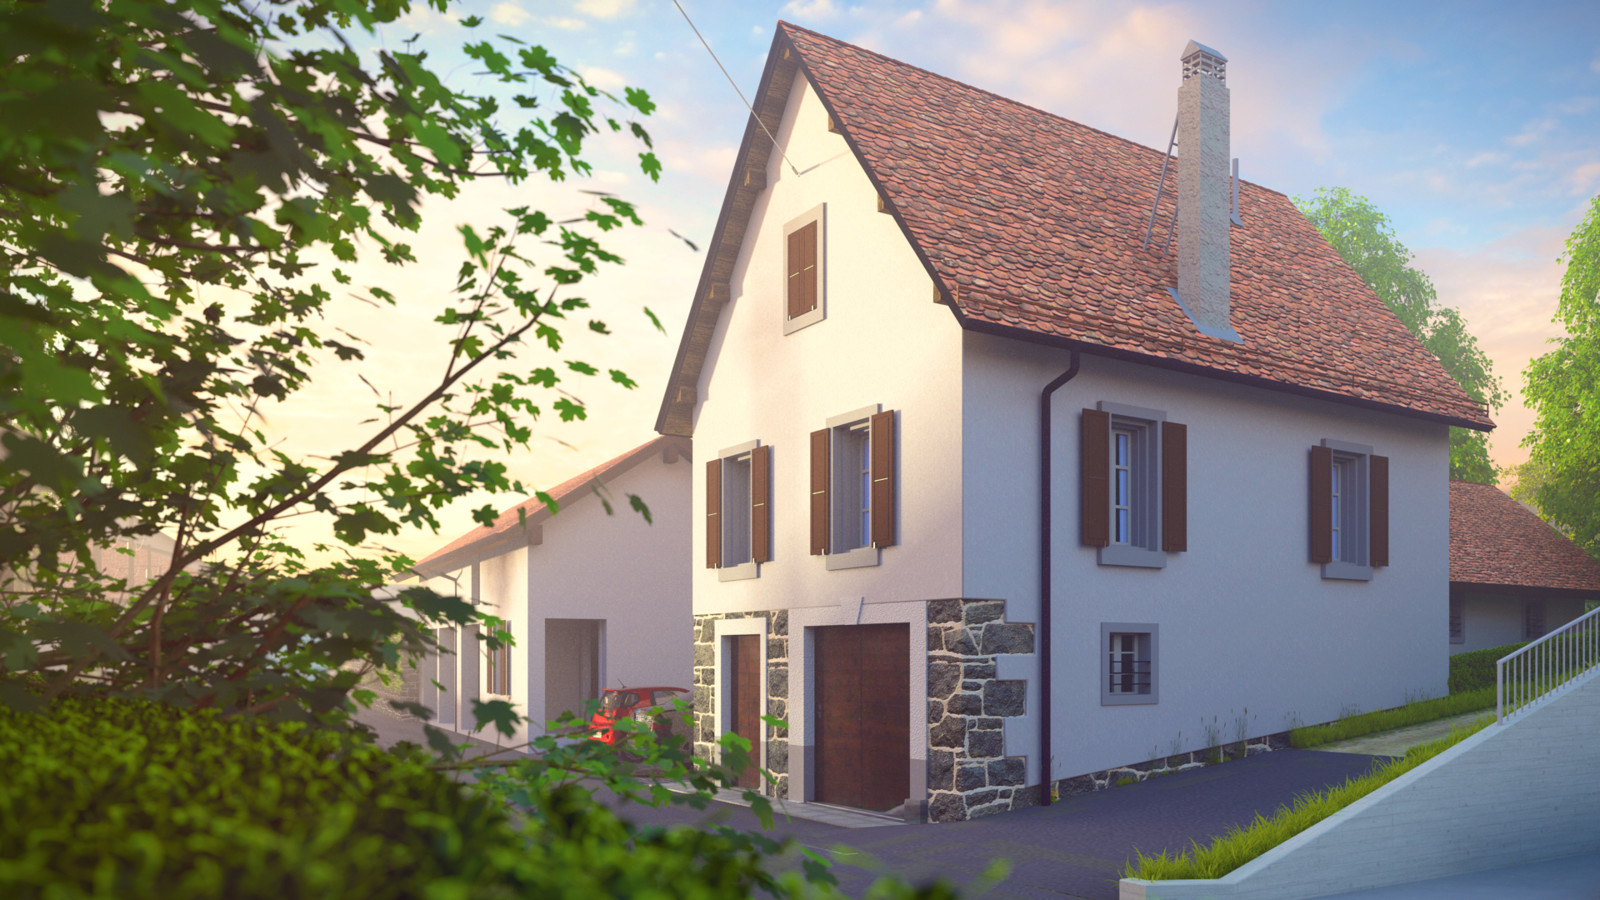 SketchUp + Thea Render  Little Swiss House à Vullierens (Day break) with rendered morning mist/fog  Vullierens complete 02 SUv2016-Scene 28A Lumina Sunday